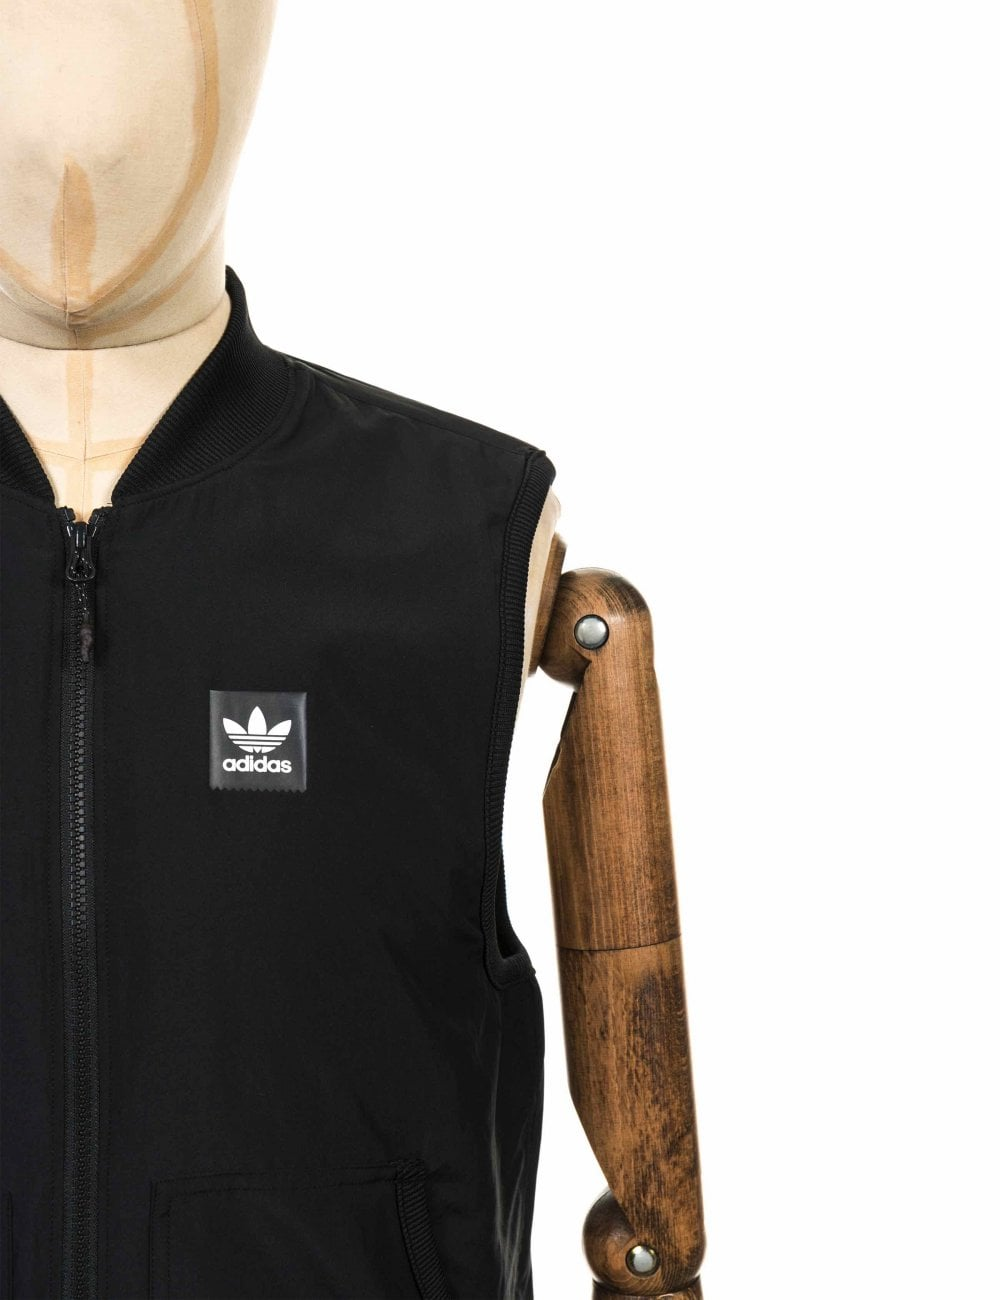 Imperialismo Bajar Cantidad de dinero  Adidas Skateboarding Meade Vest - Black/White - Clothing from Fat Buddha  Store UK